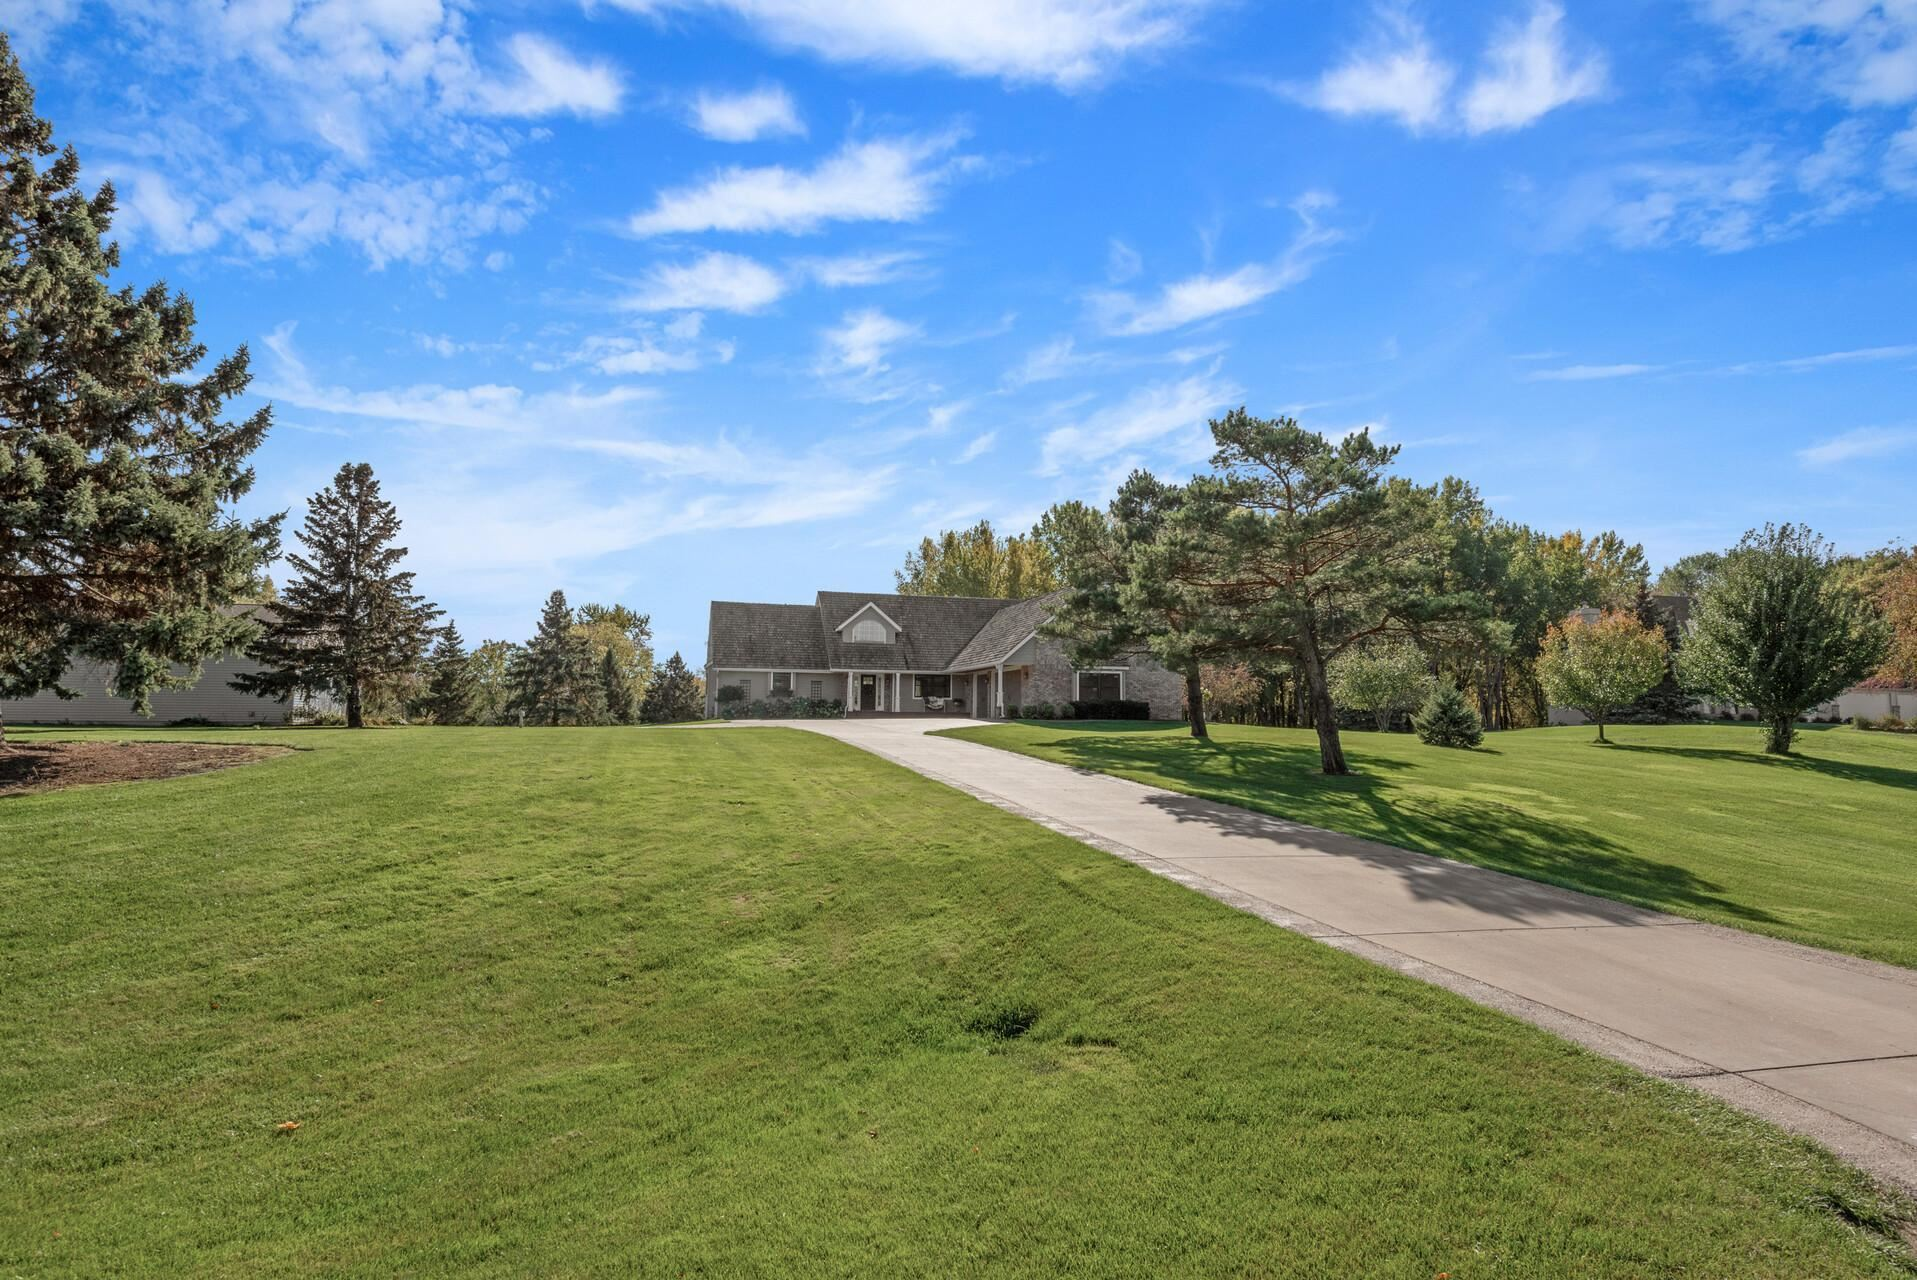 Photo of 8134 142nd Avenue NW, Ramsey, MN 55303 (MLS # 6117074)